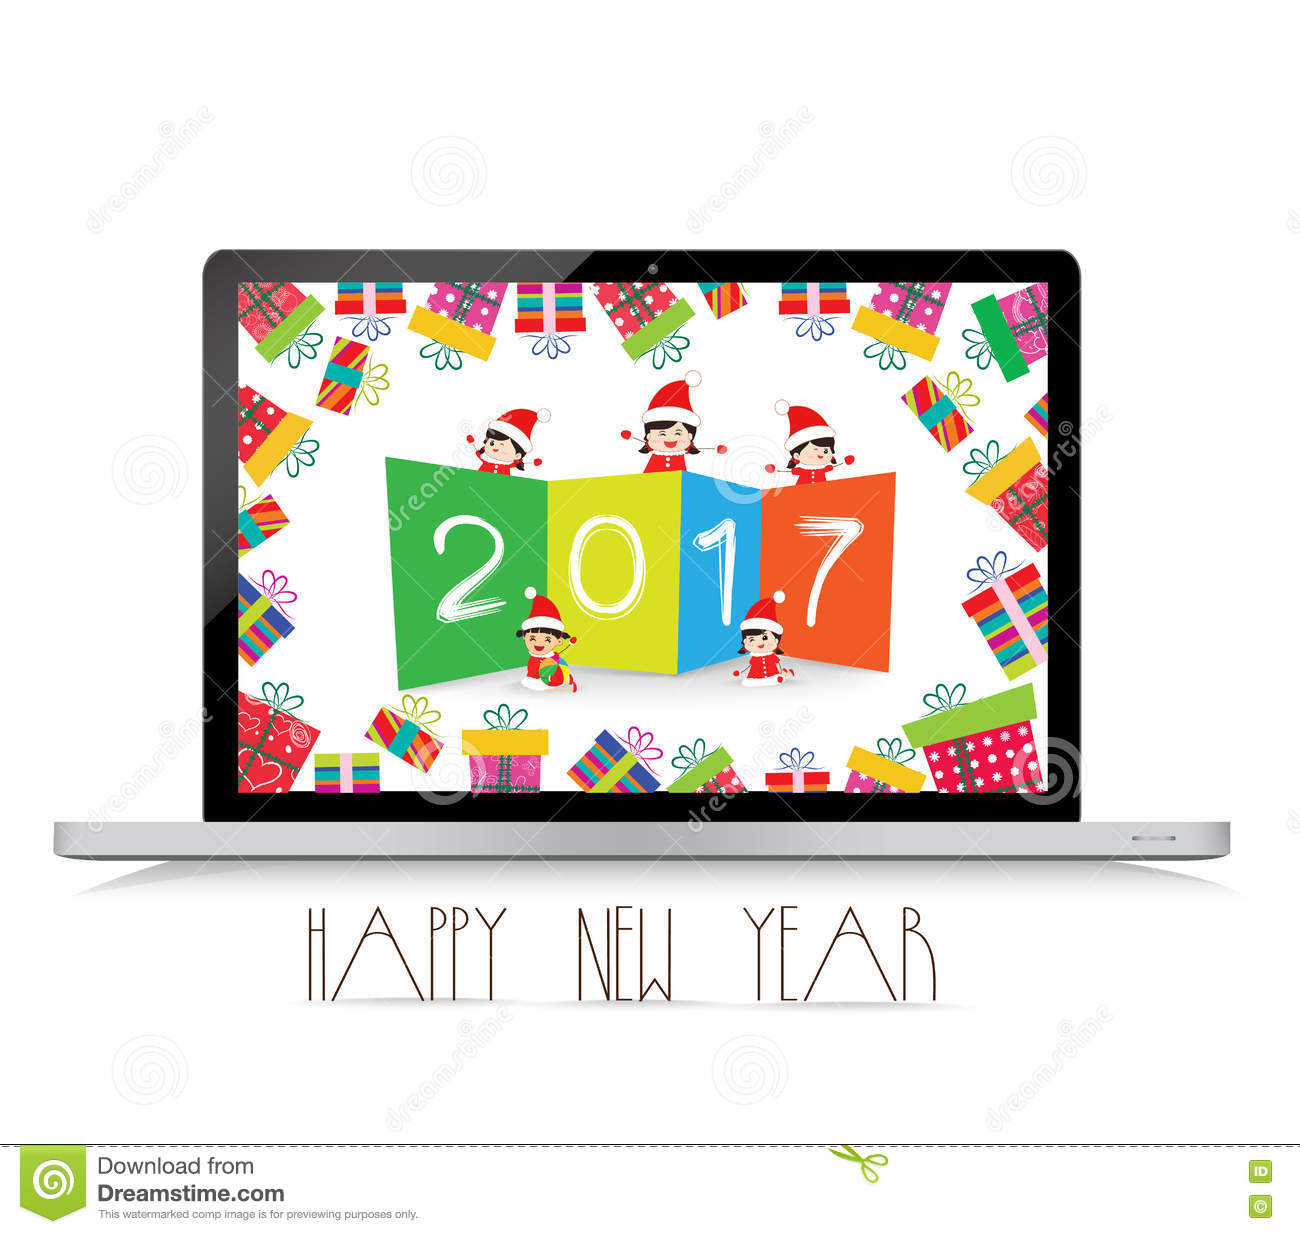 happy new year 2017 with laptop funny kids